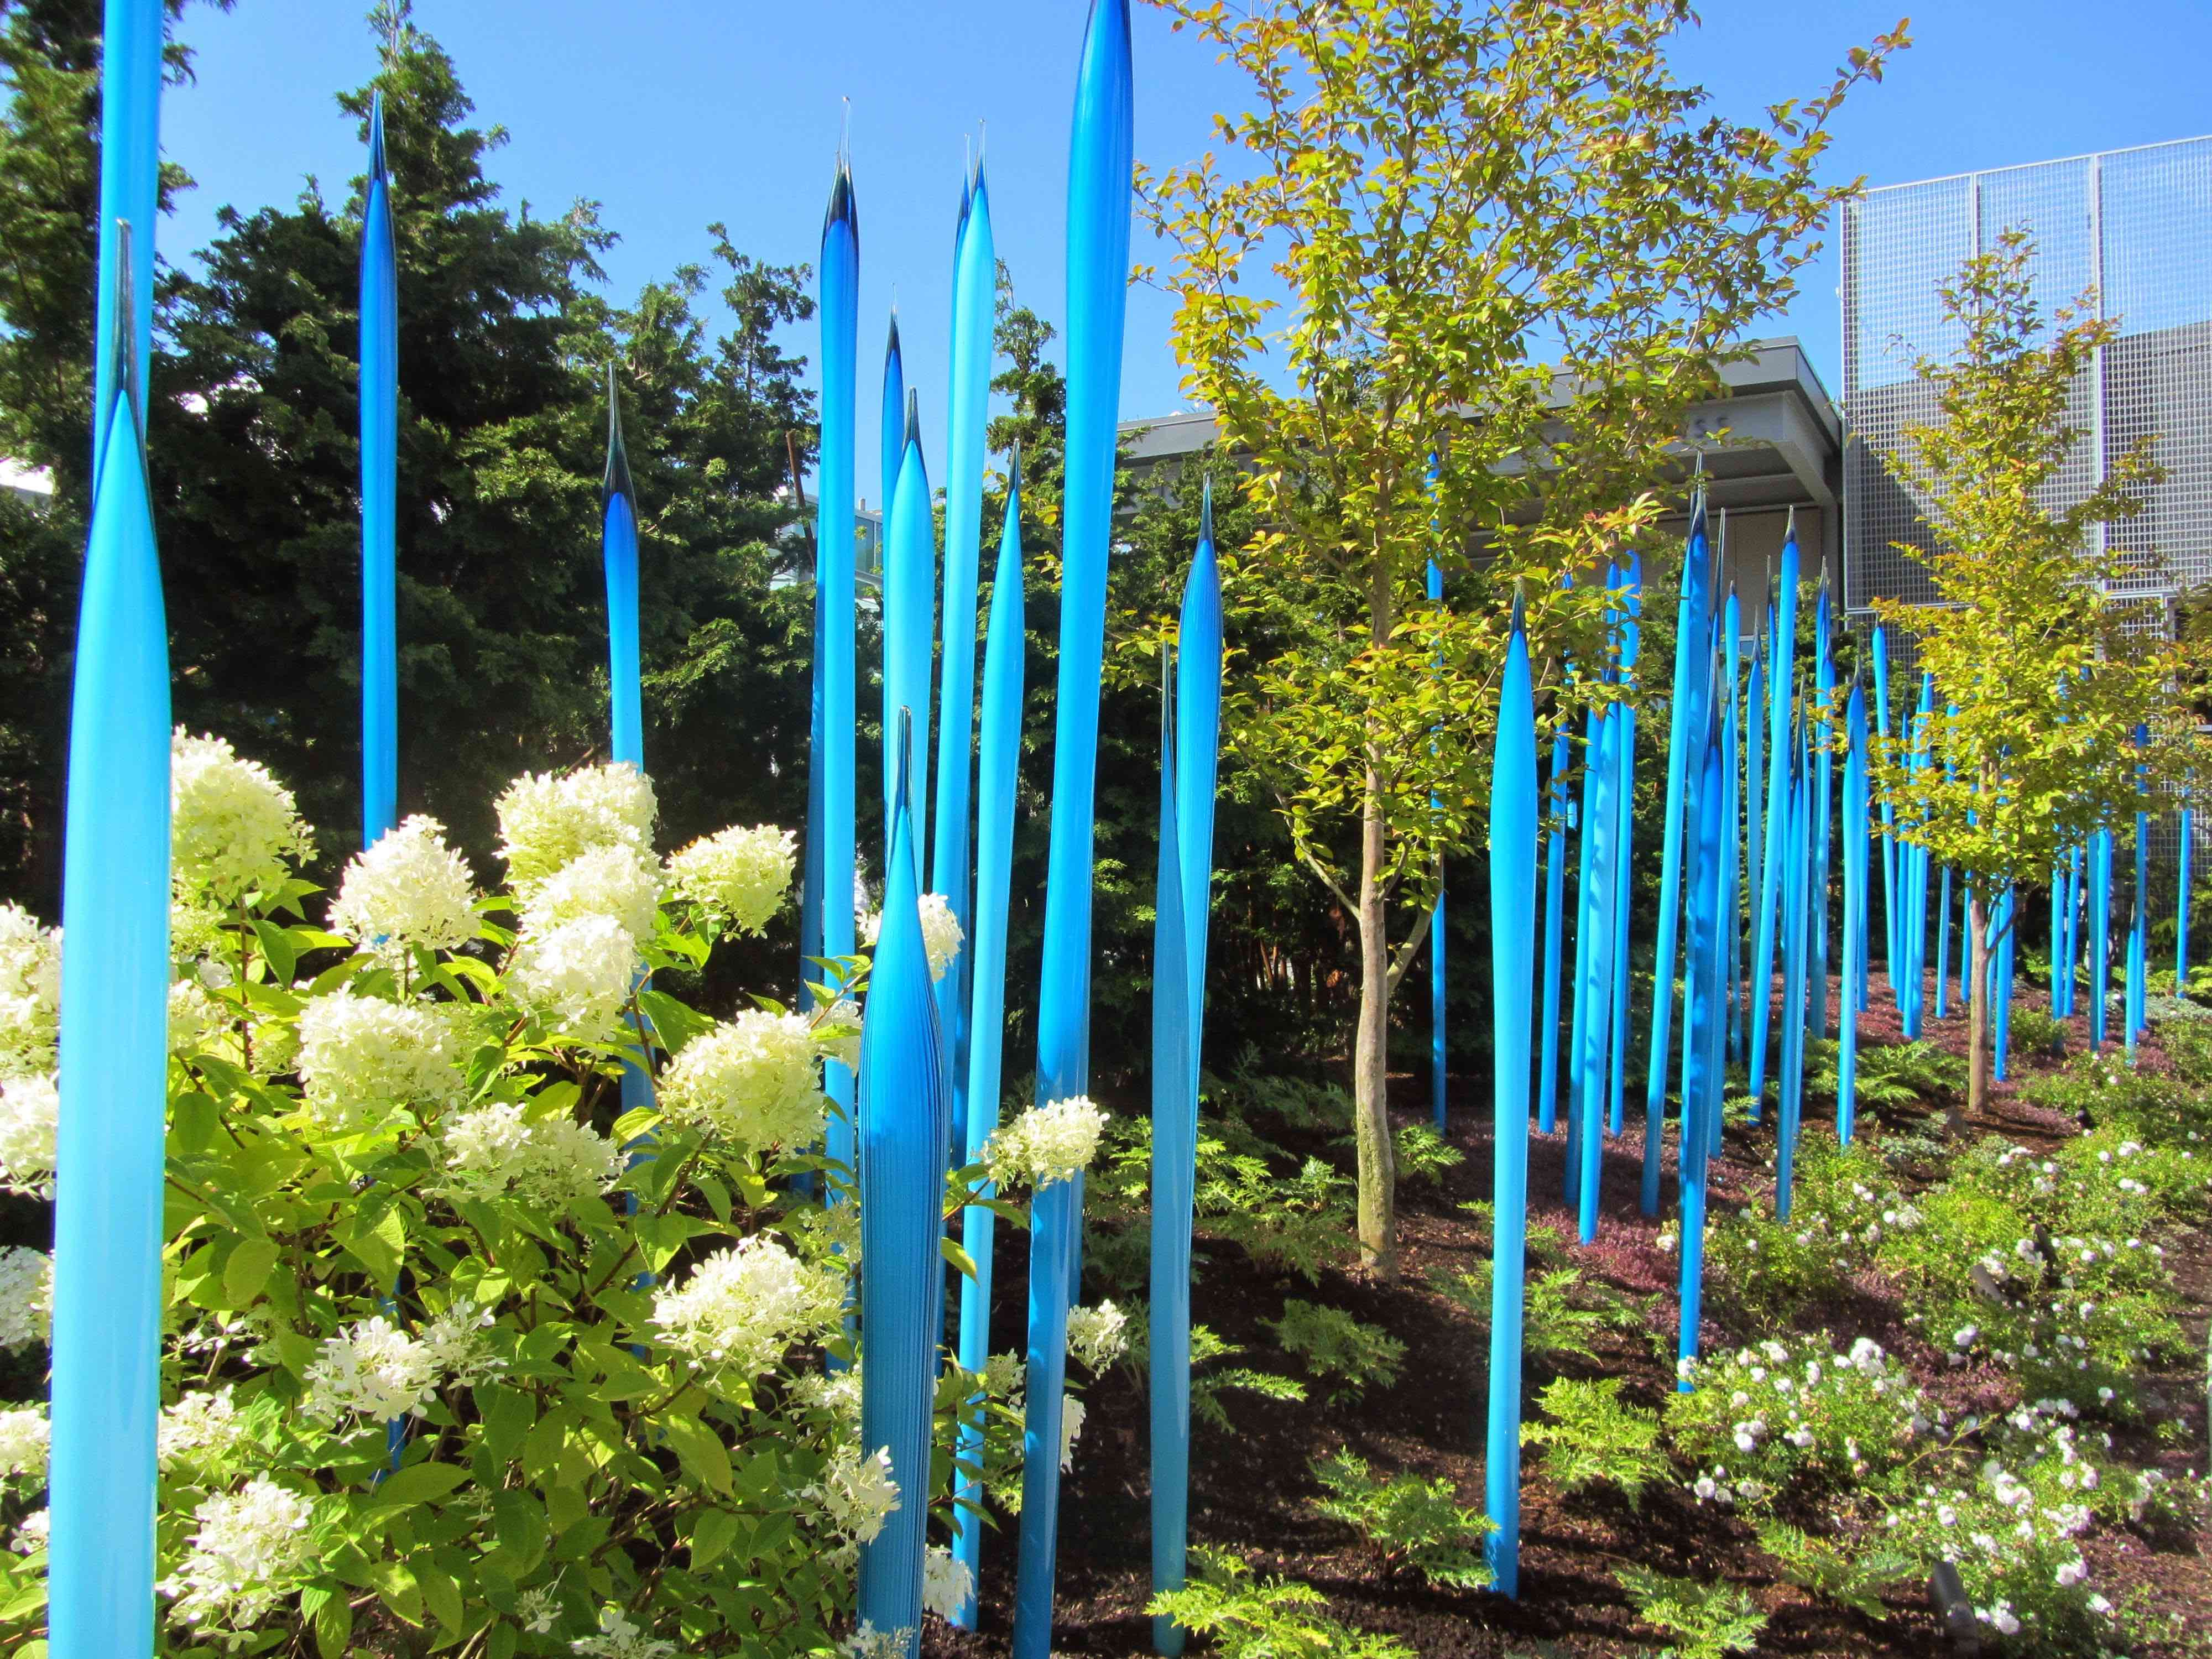 chihuly garden and glass - photo #36